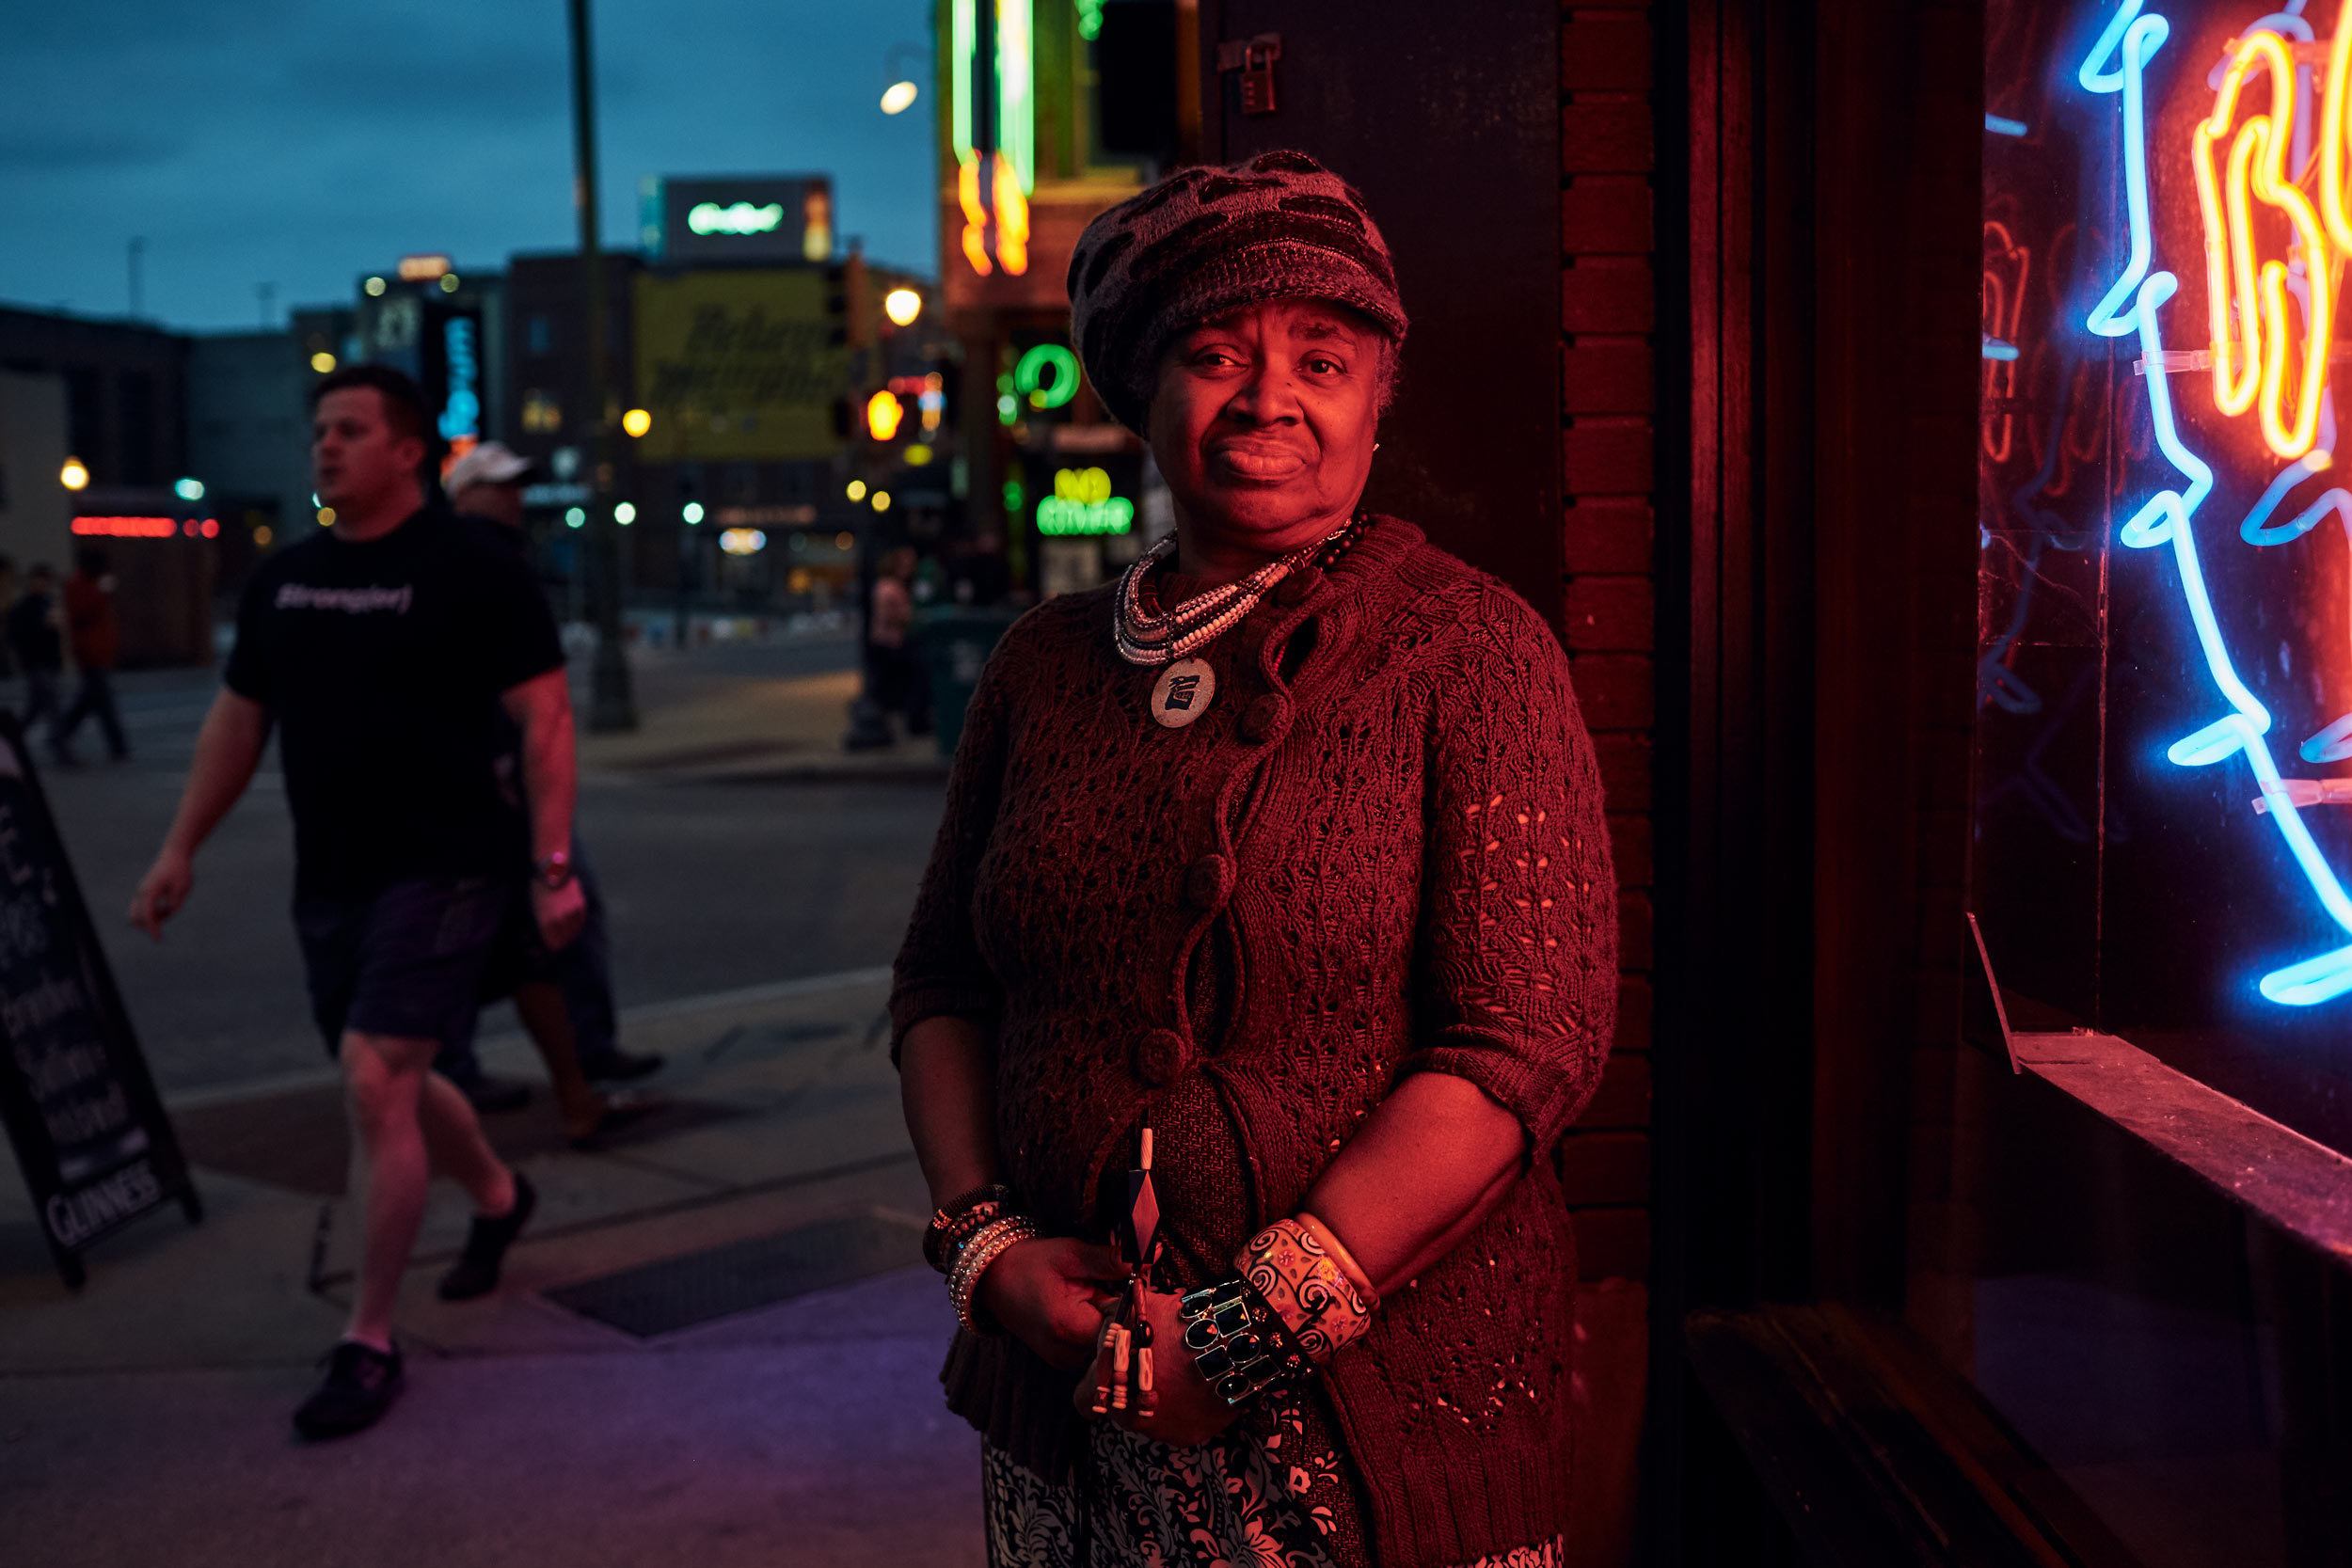 Carla Thomas in Memphis, washington dc portrait photography